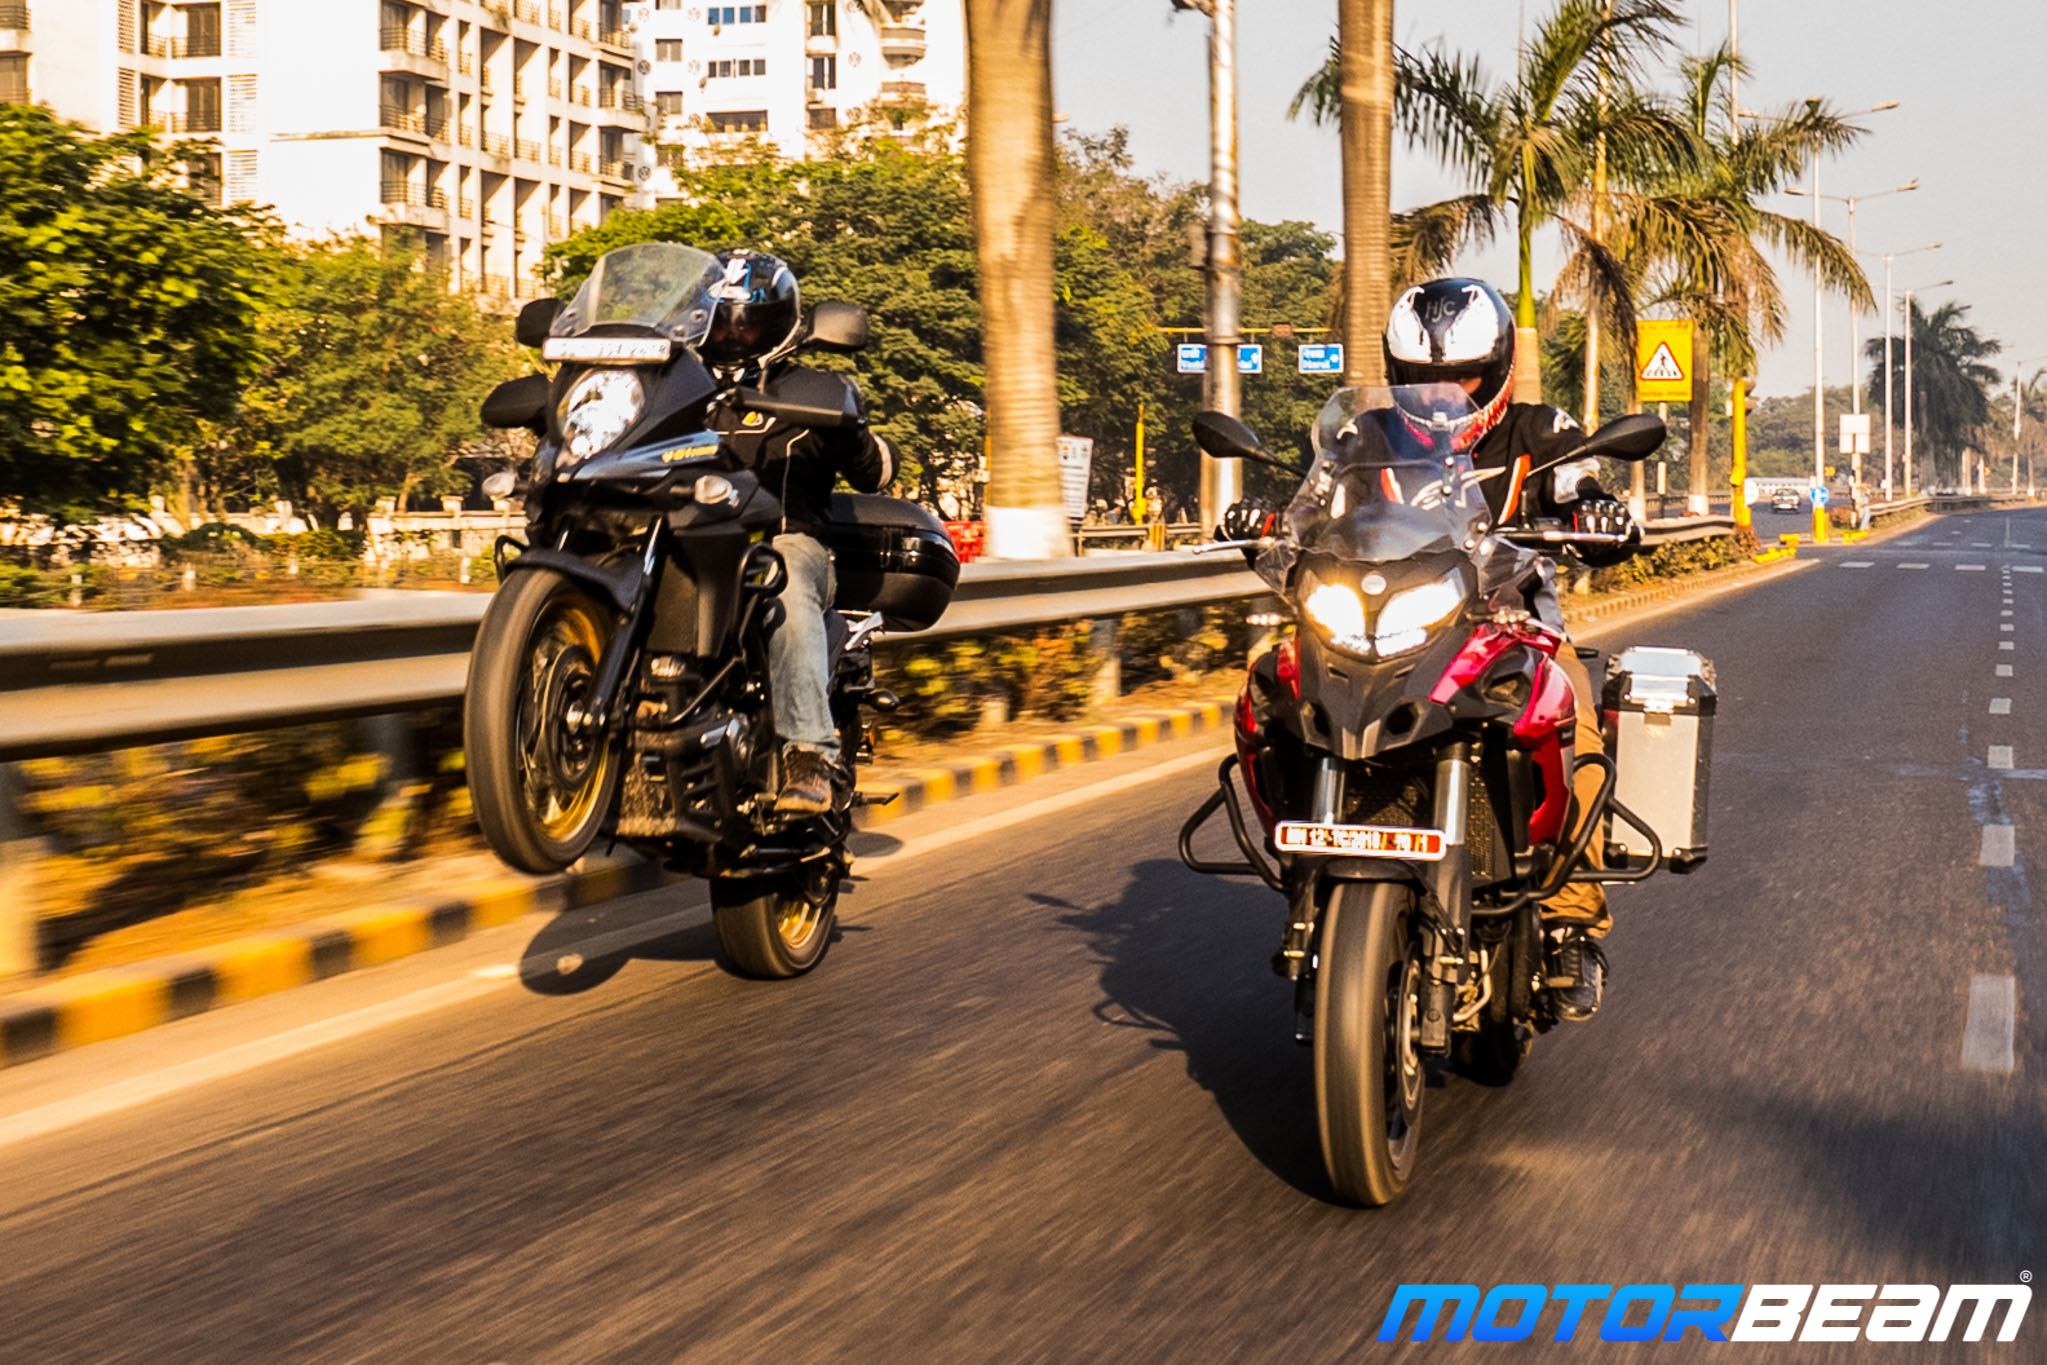 Benelli TRK 502 vs Suzuki VStrom 650XT Comparison Test